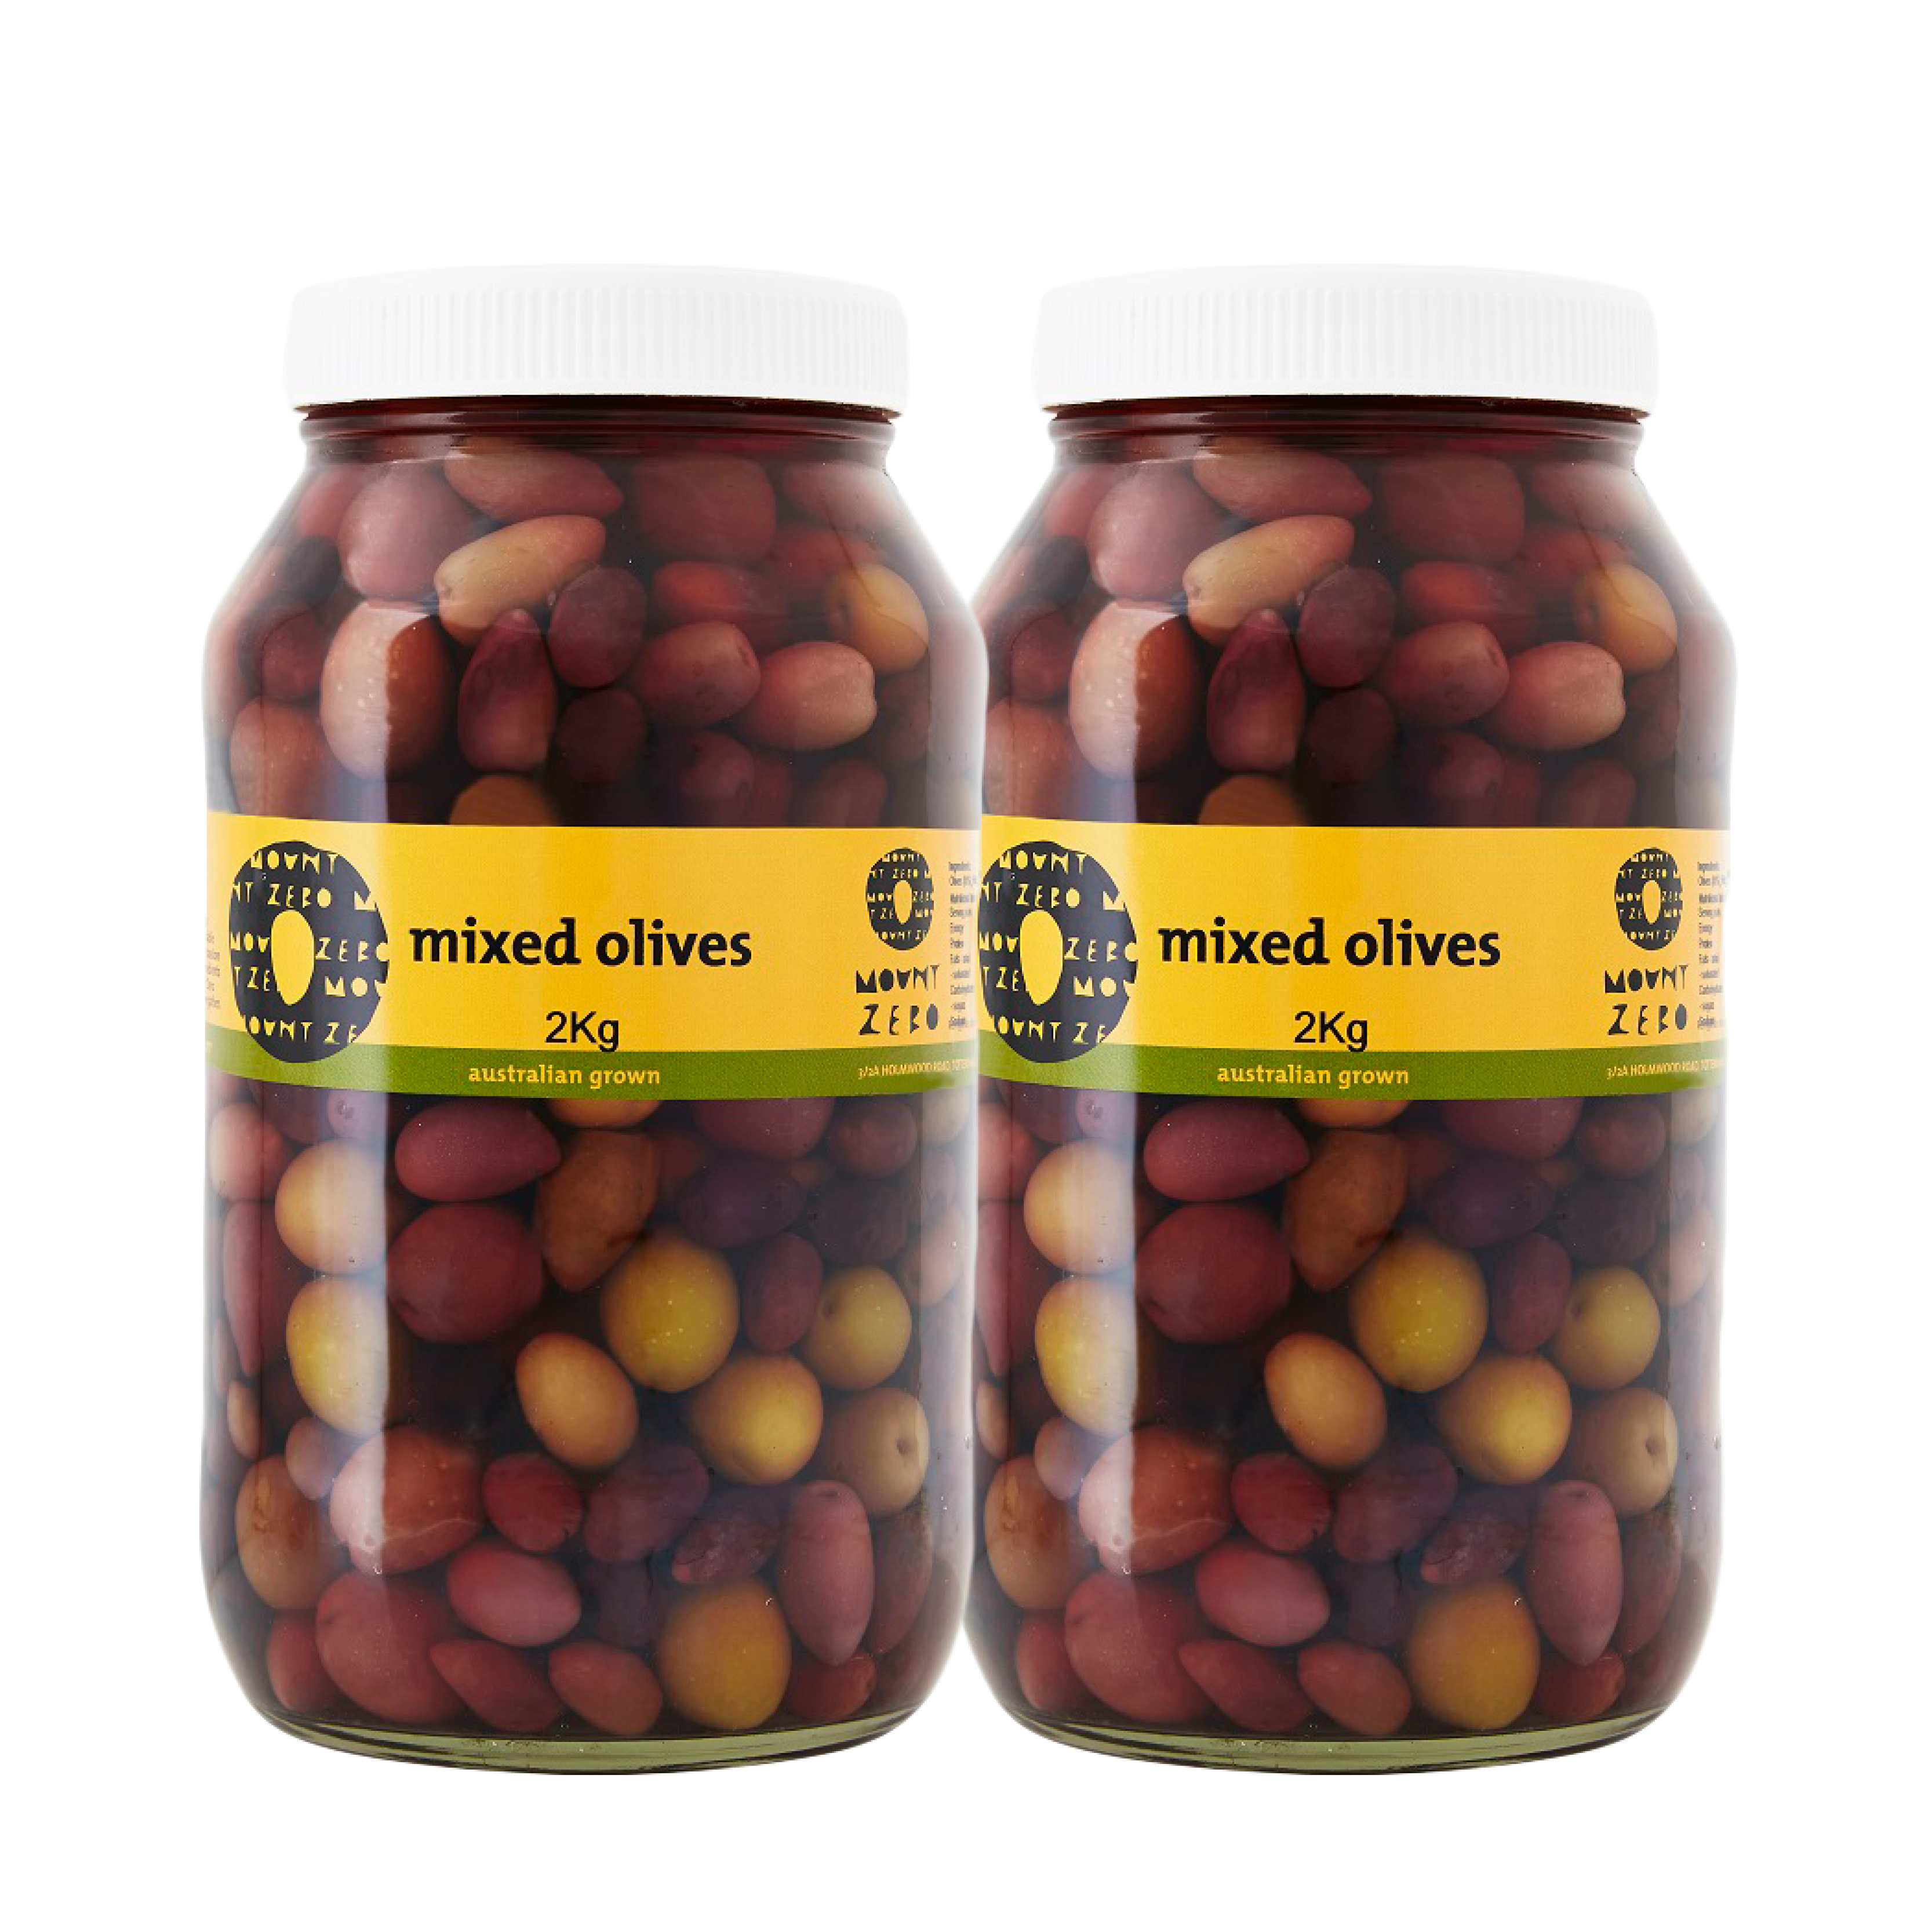 on sale! 2 x Mixed Olives 2kg